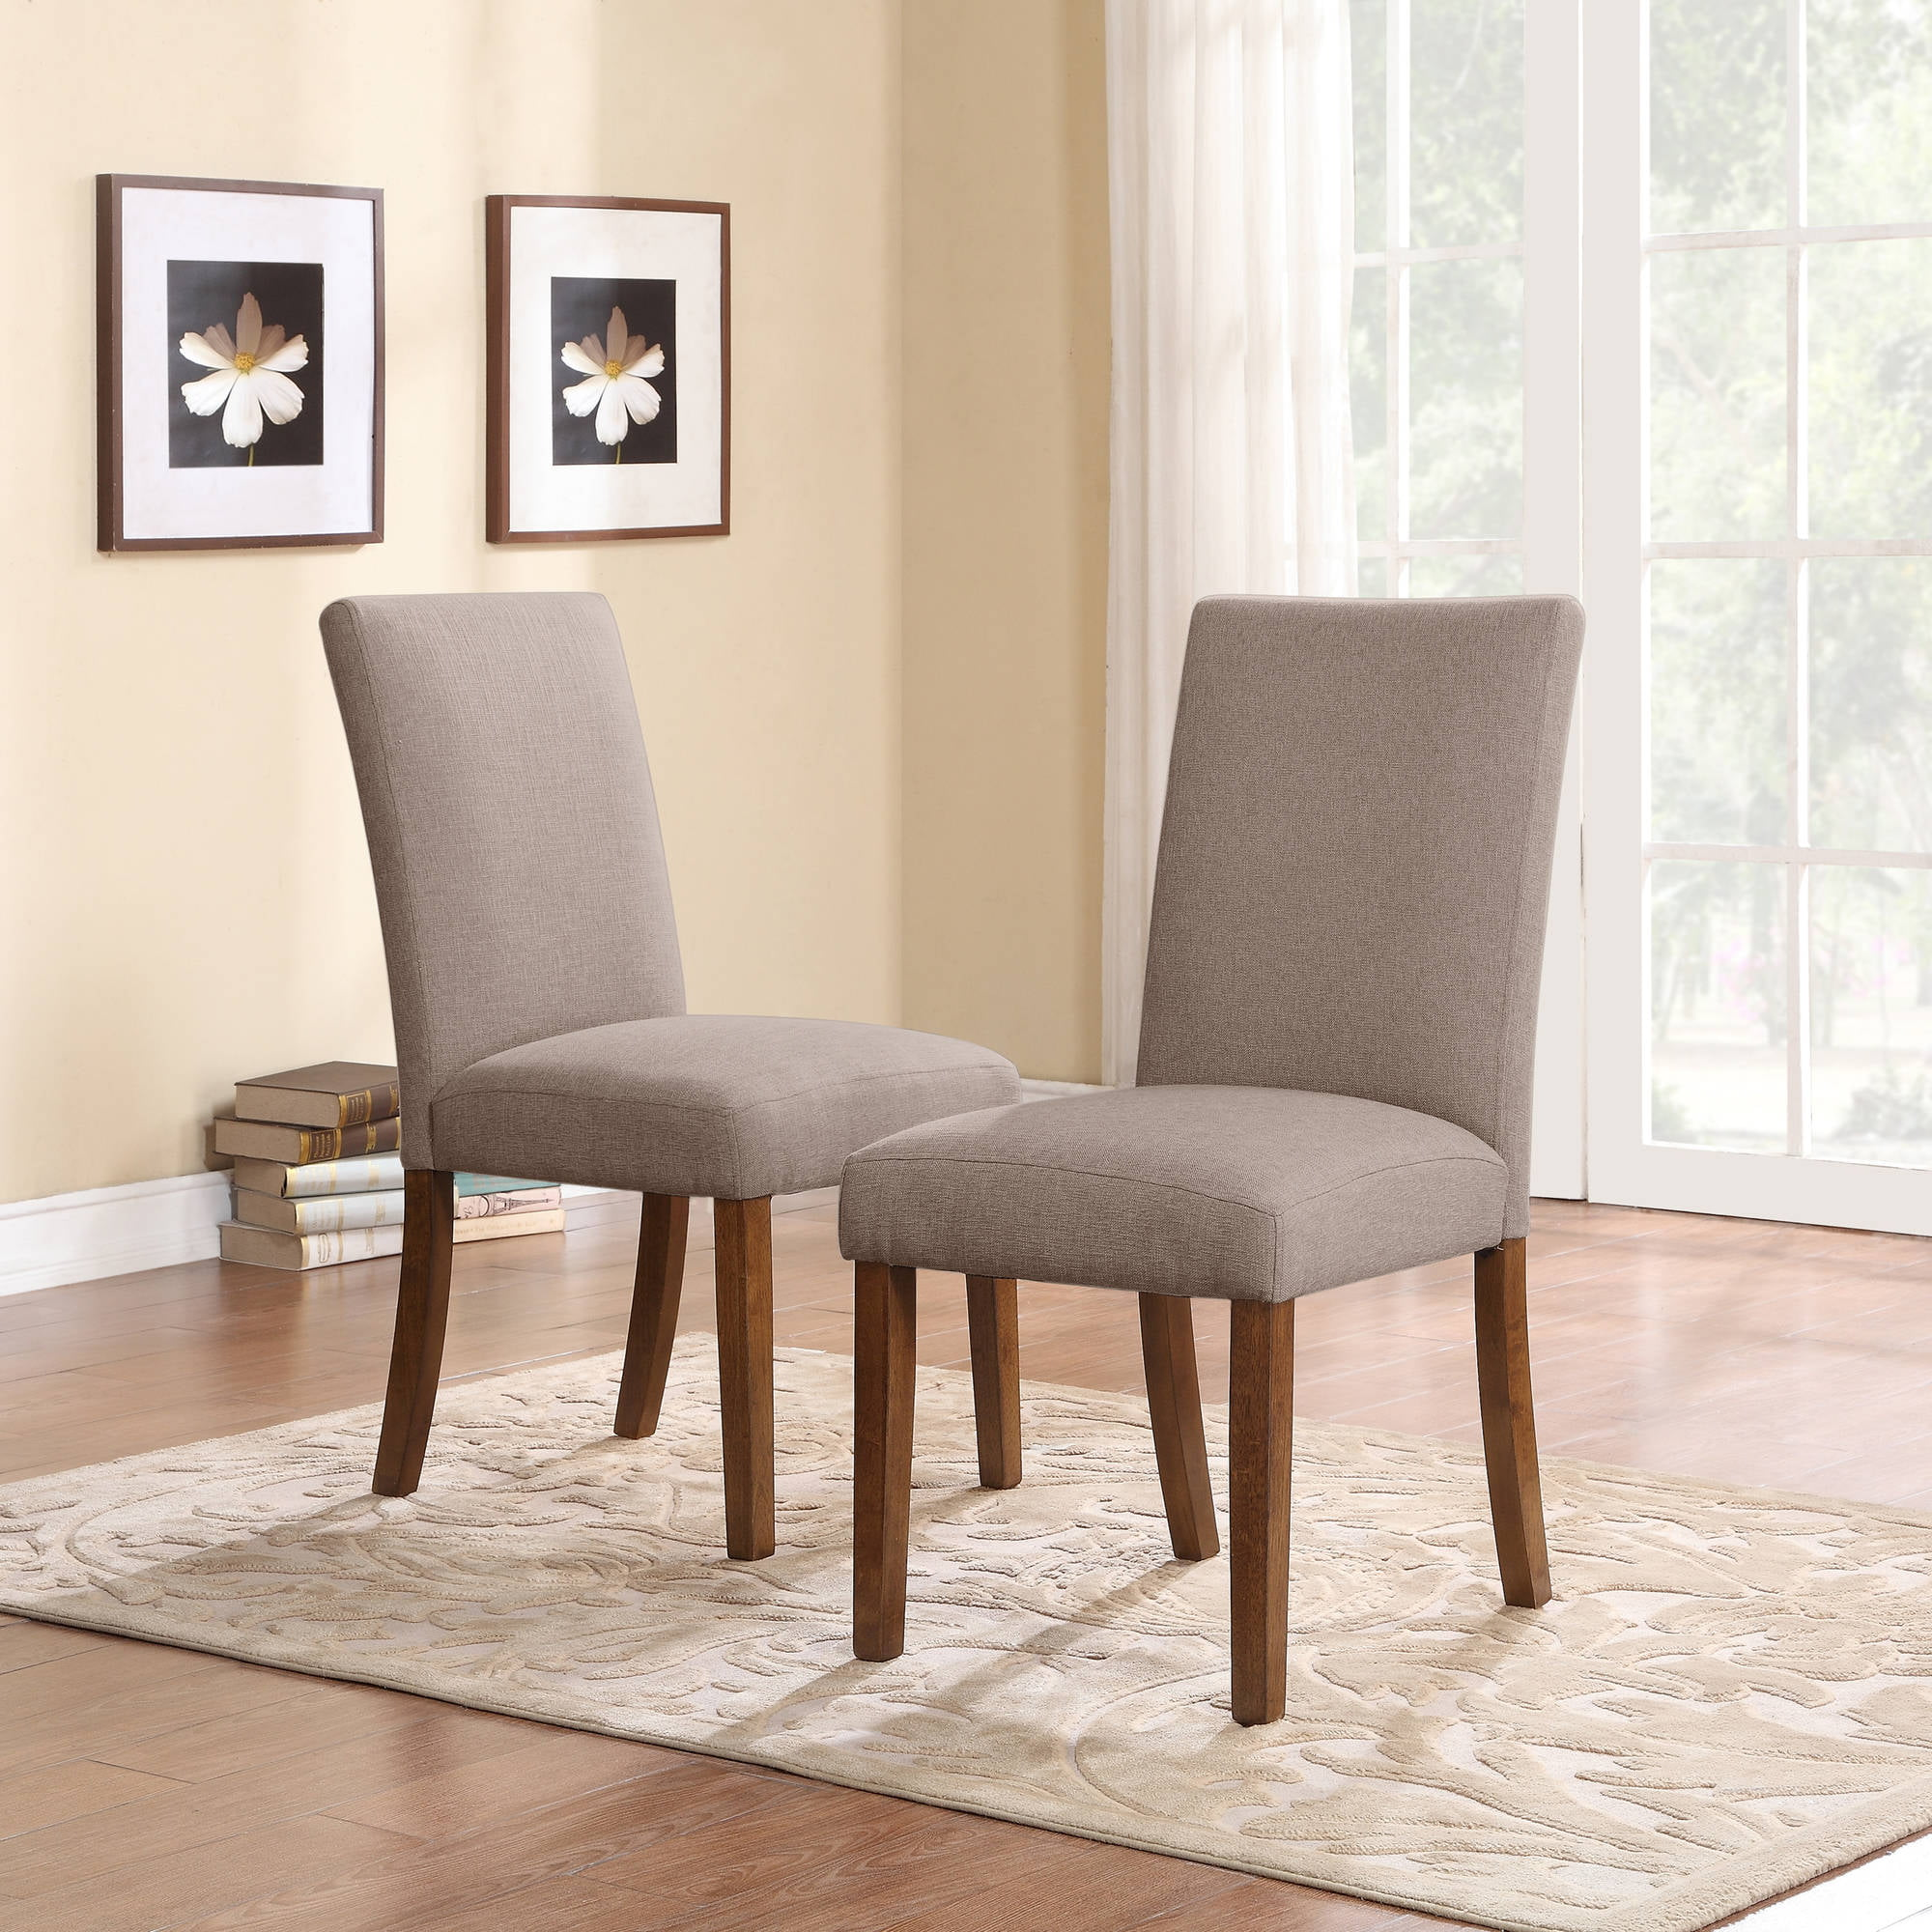 Merveilleux Trestle 5 Piece Dining Set With Linen Parsons Chairs, Dark Pine/Taupe    Walmart.com